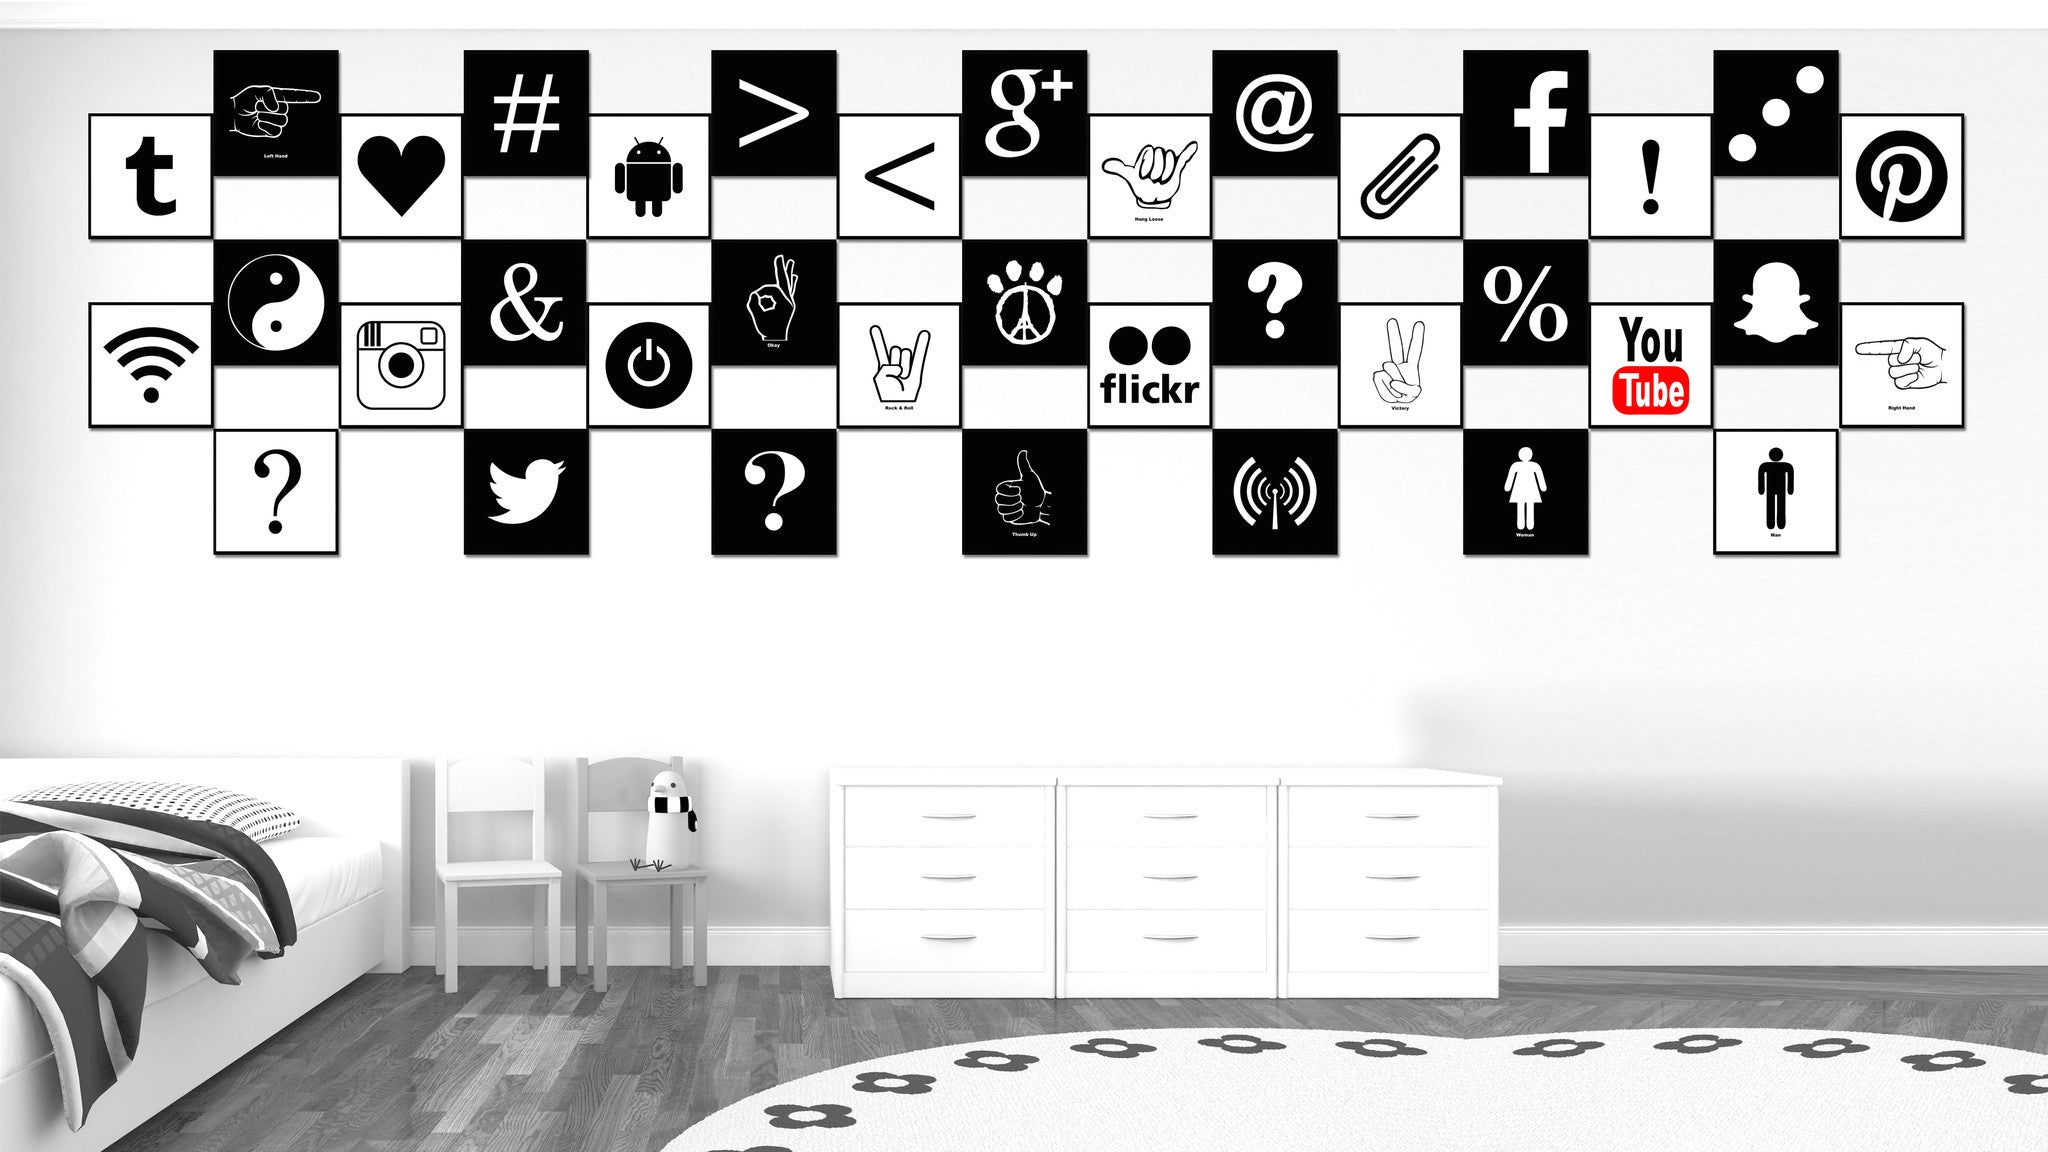 Snapchat Social Media Icon Canvas Print Picture Frame Wall Art Home Decor